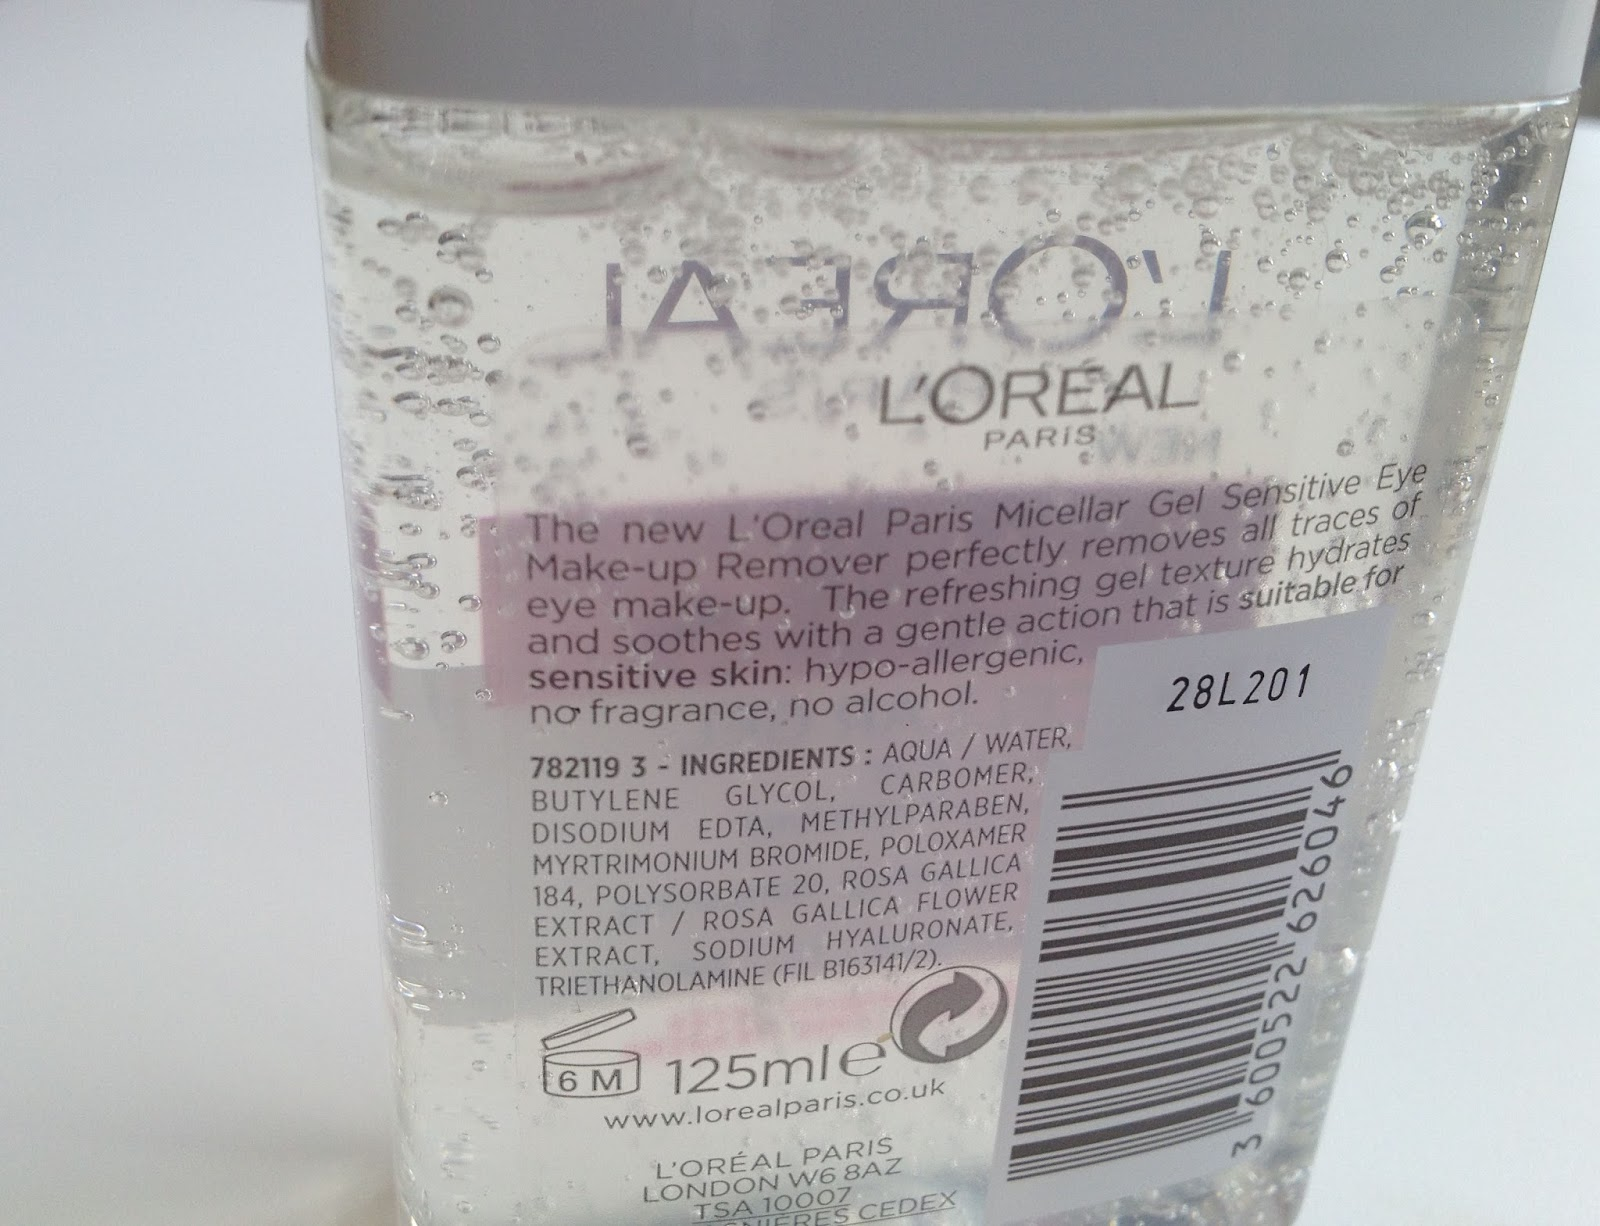 L'Oreal Skin Perfection Micellar Gel